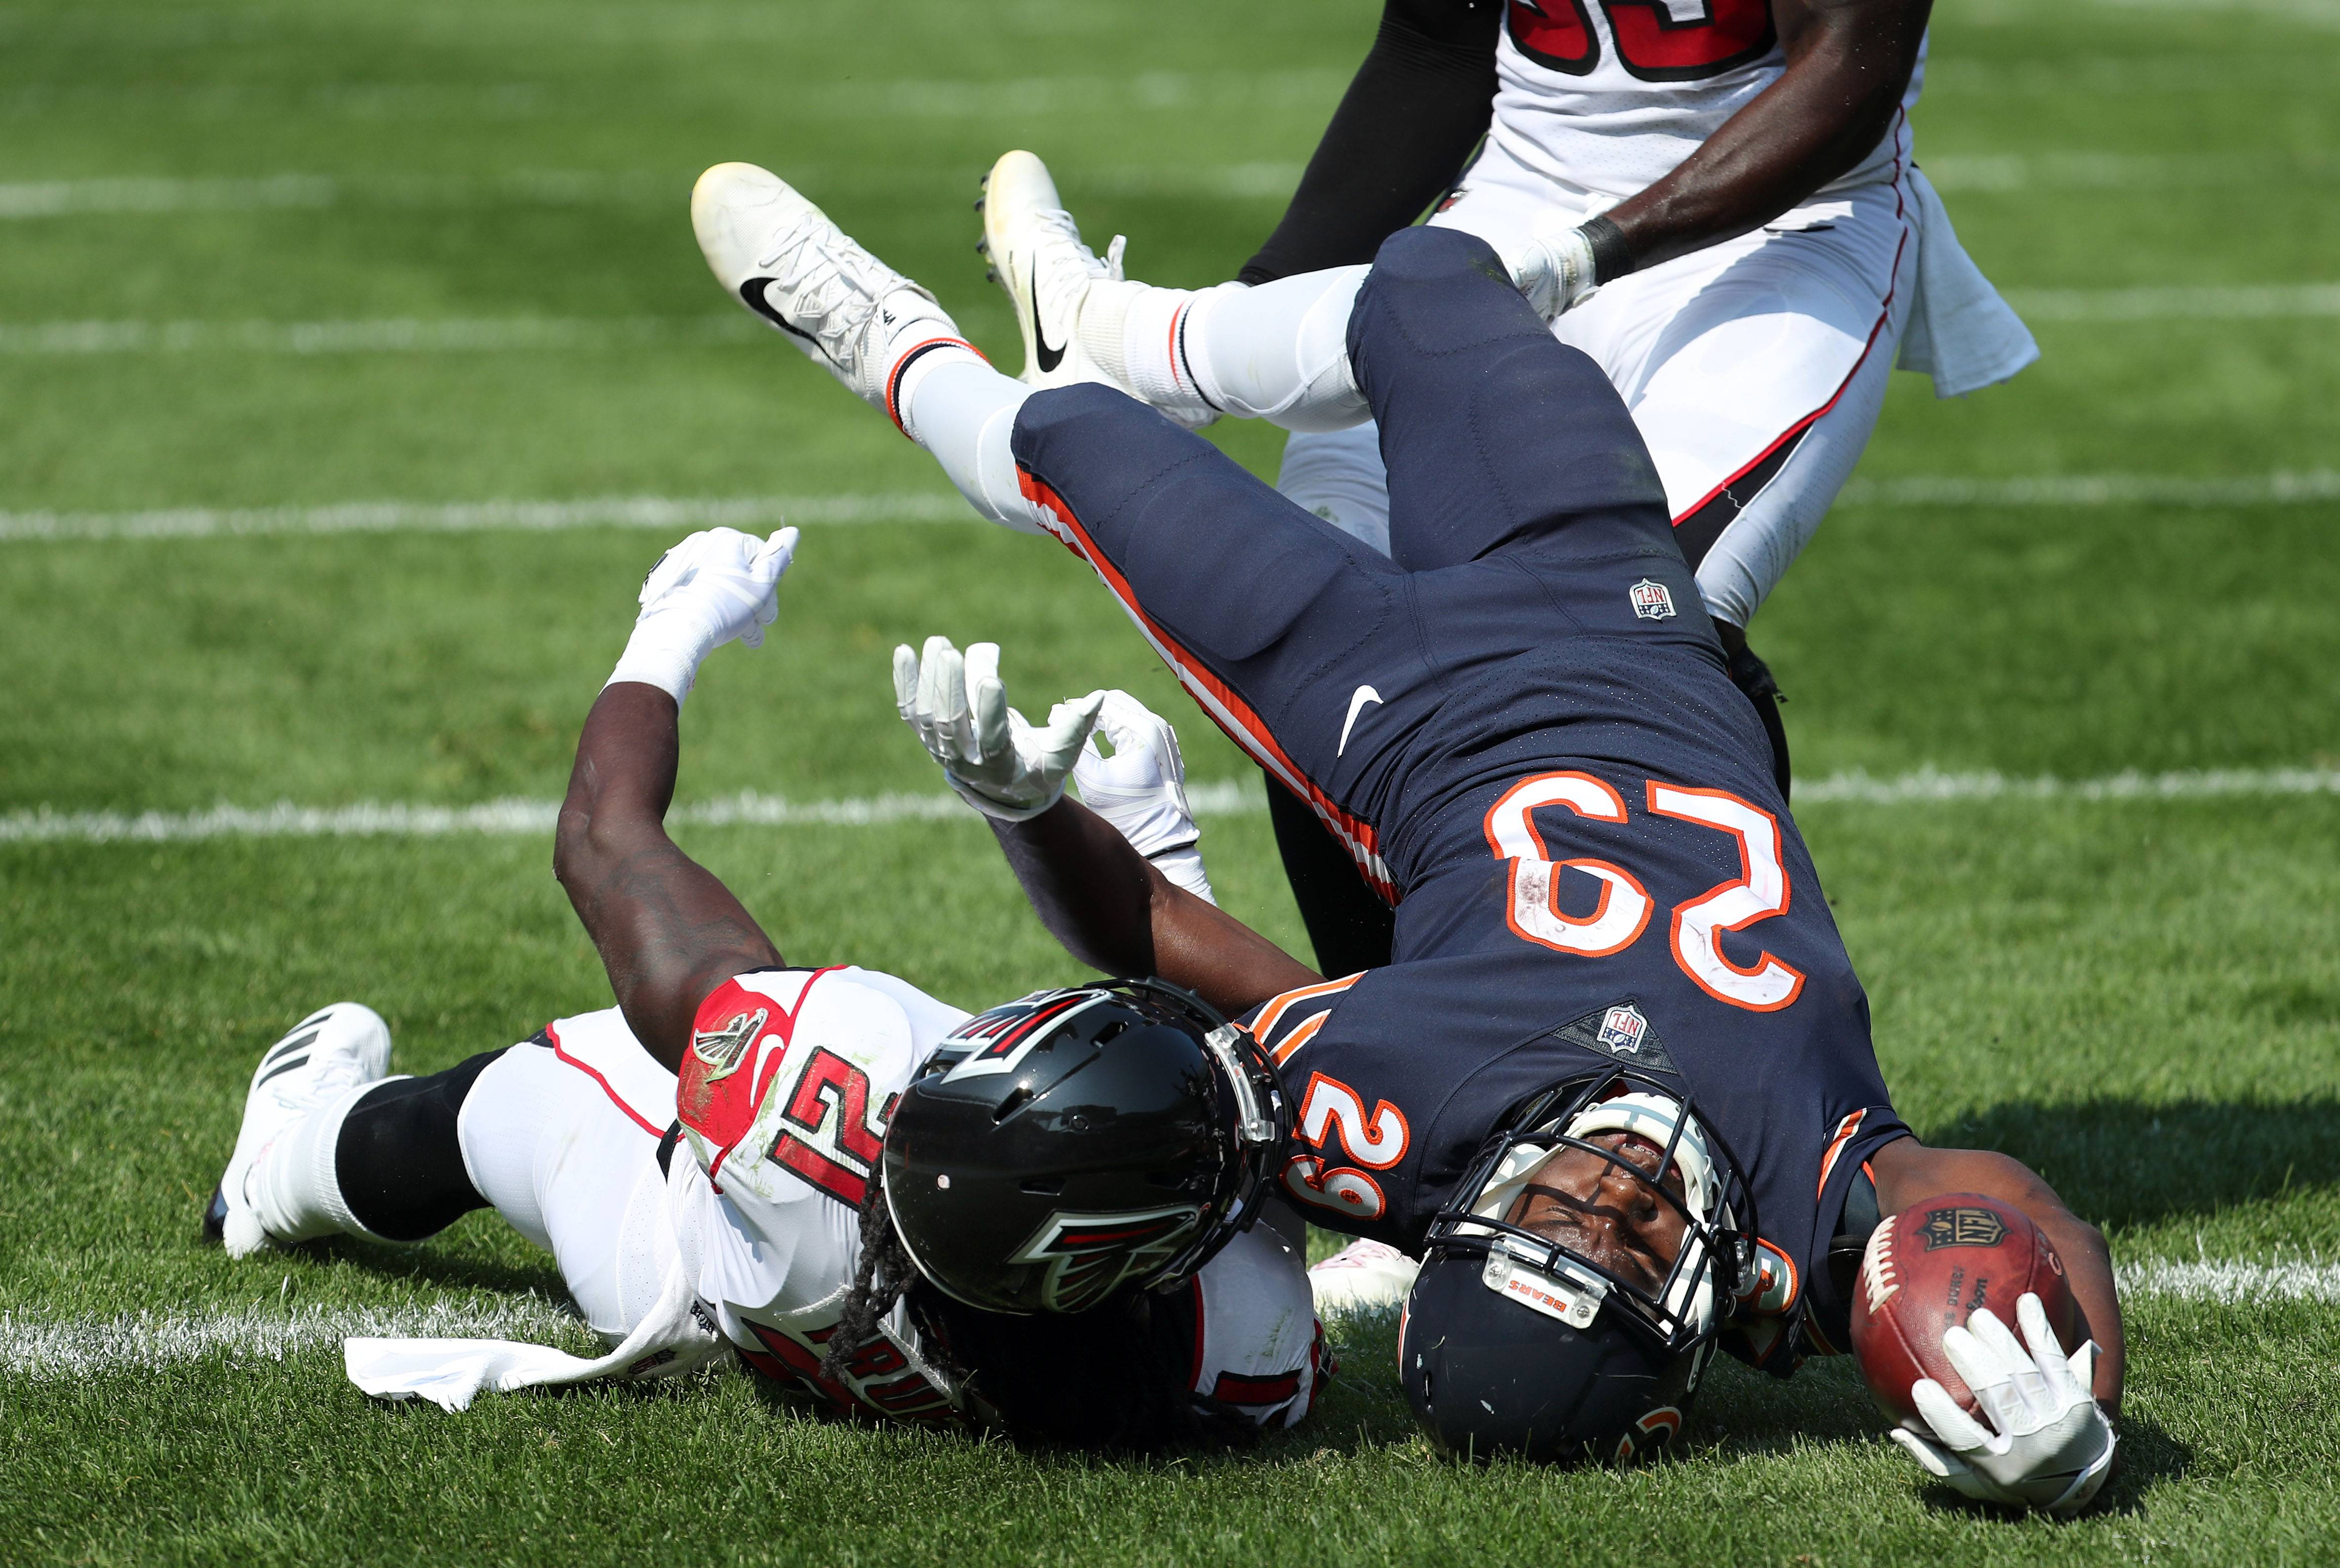 Chicago Bears running back Tarik Cohen stretches in to the end zone for a touchdown Sunday at Soldier Field.